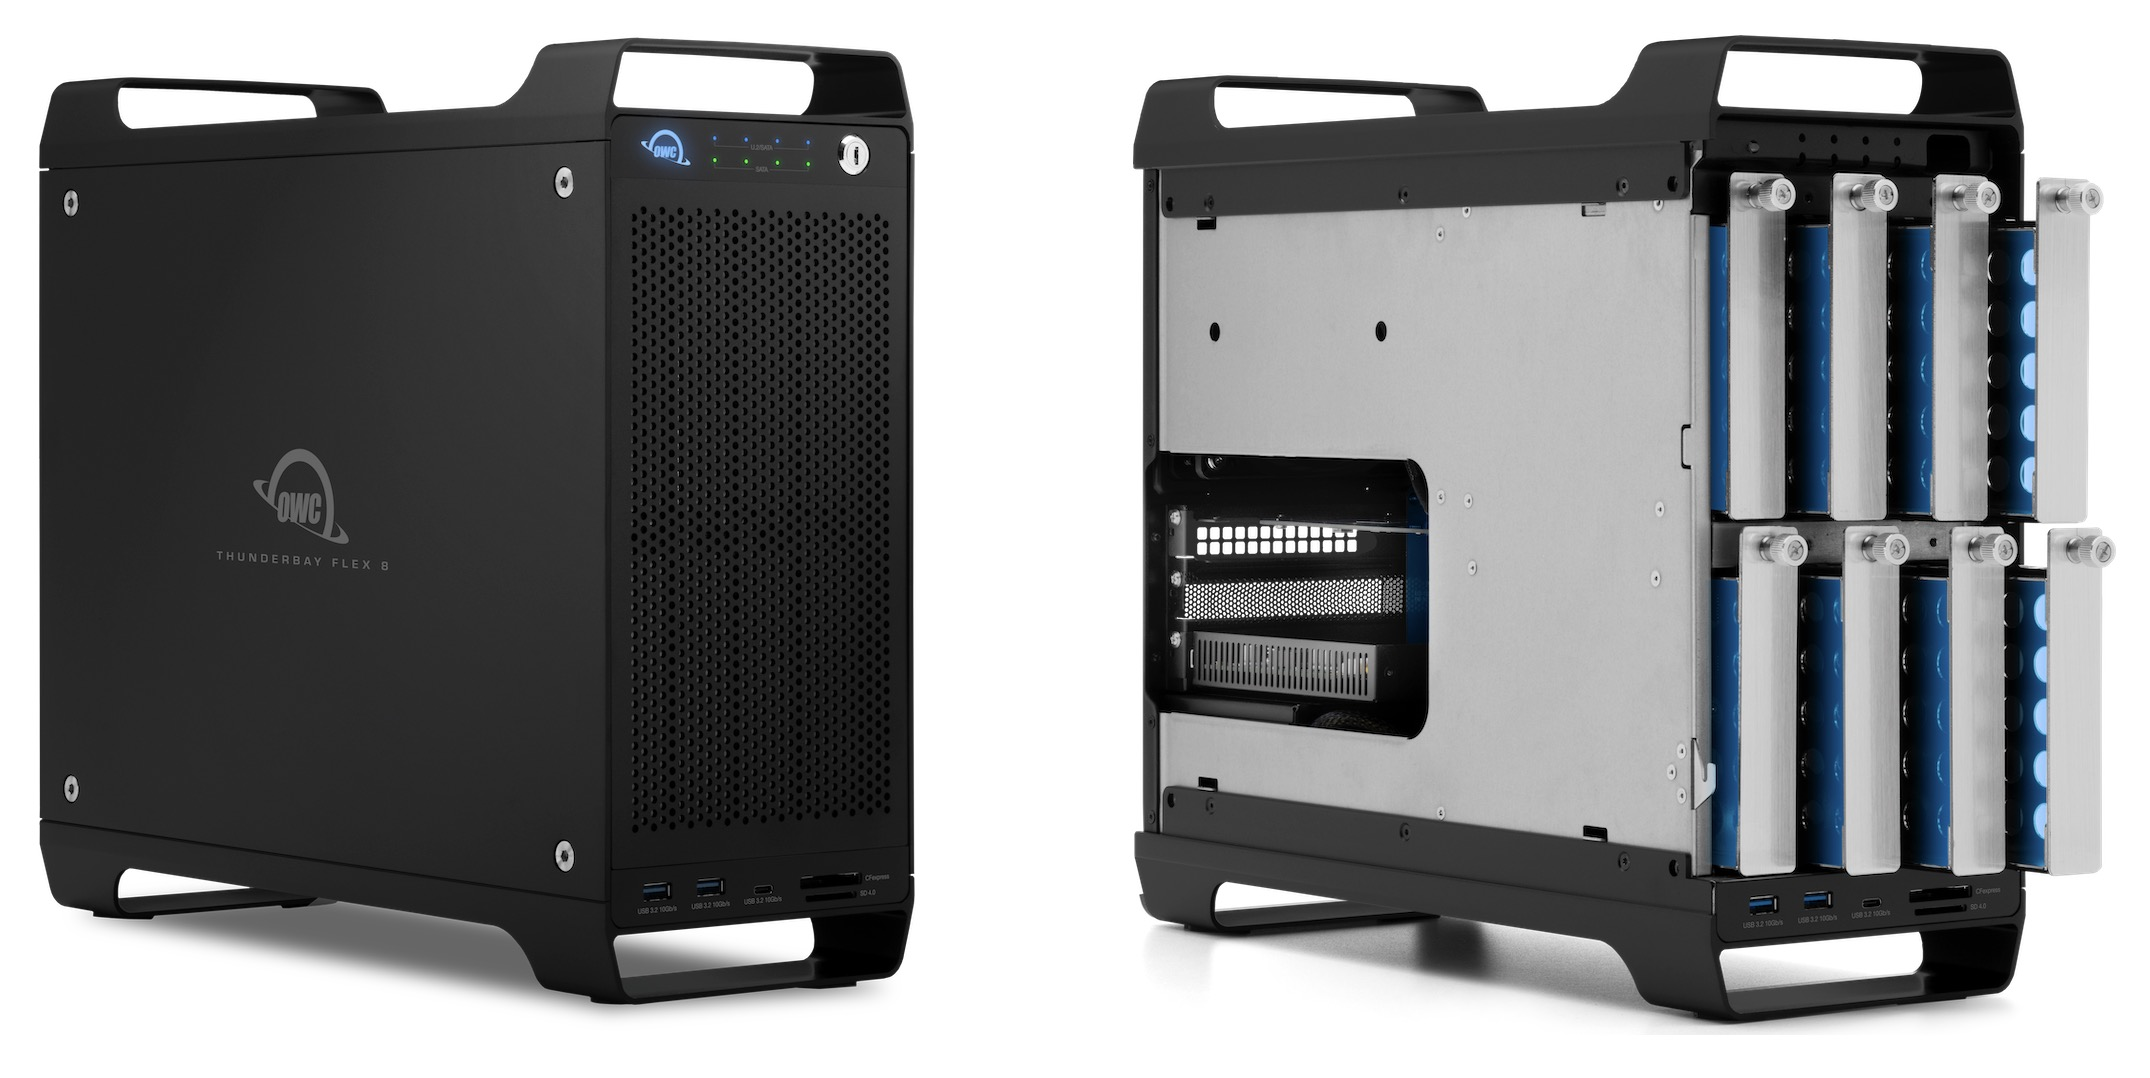 OWC's ThunderBay Flex 8 Storage and Expansion Tower for Macs Now Available - MacRumors